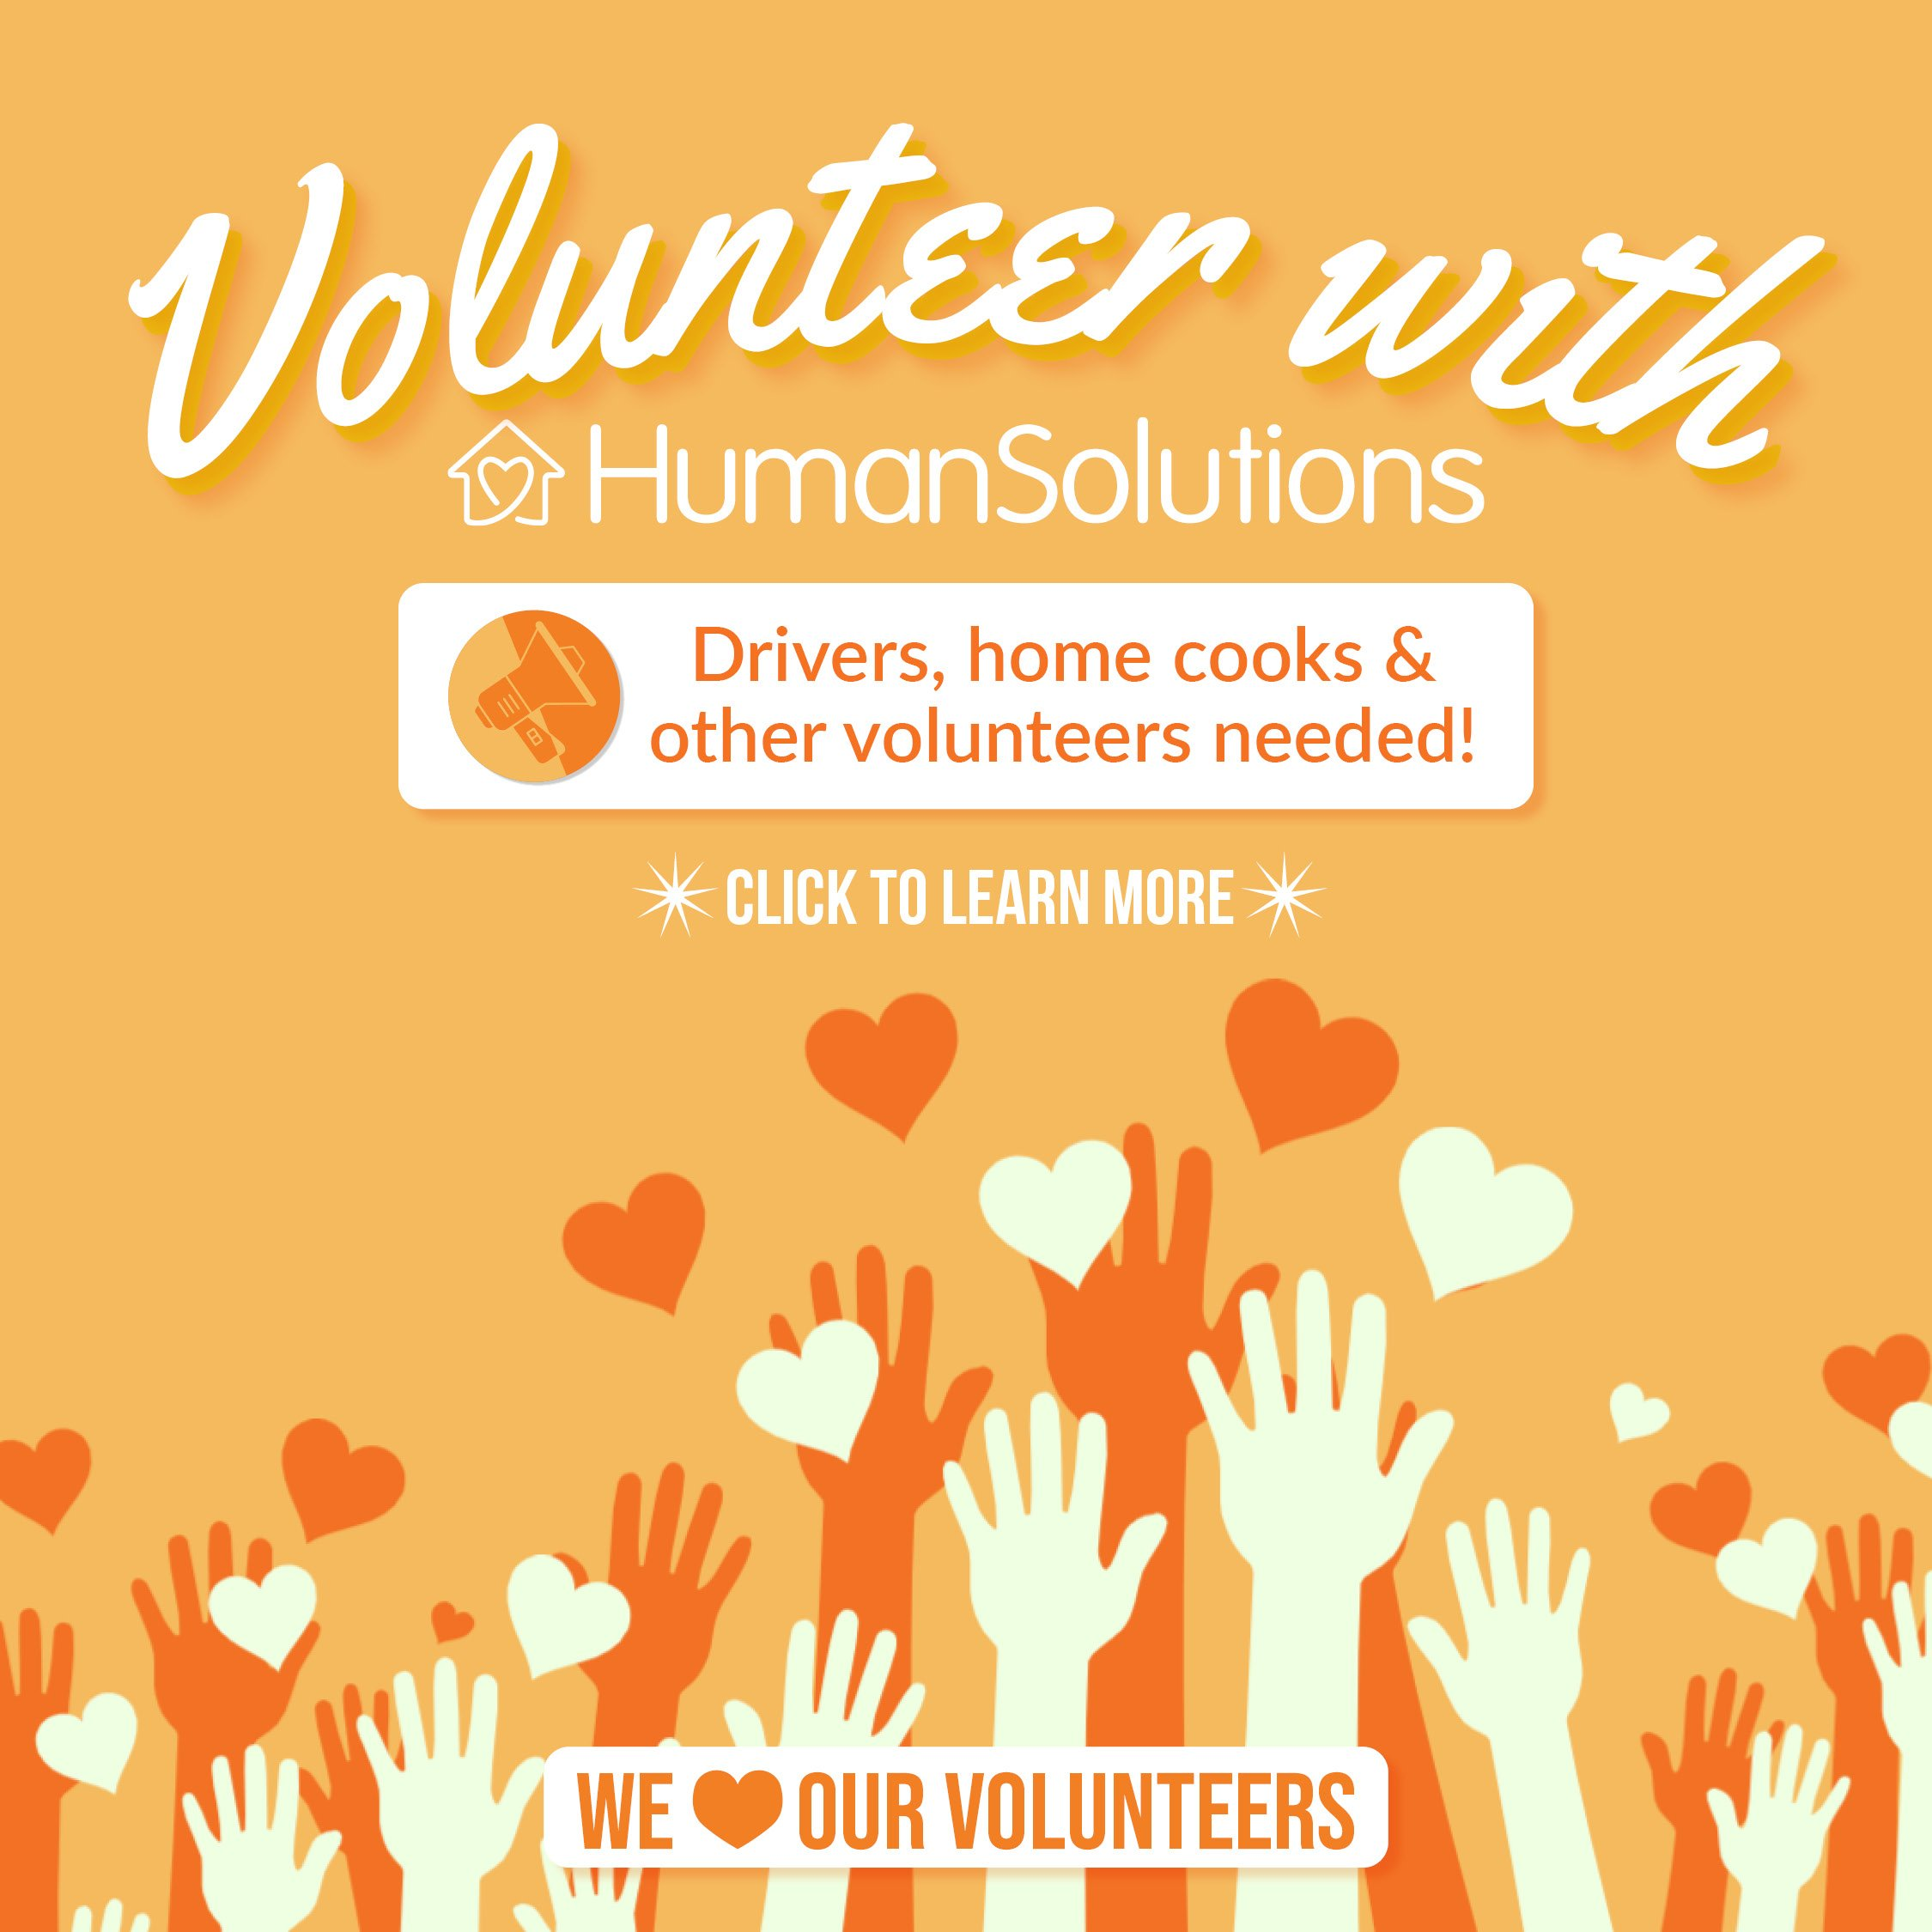 Volunteer with Human Solutions. Drivers, home cooks & other volunteers needed! Click to learn more.